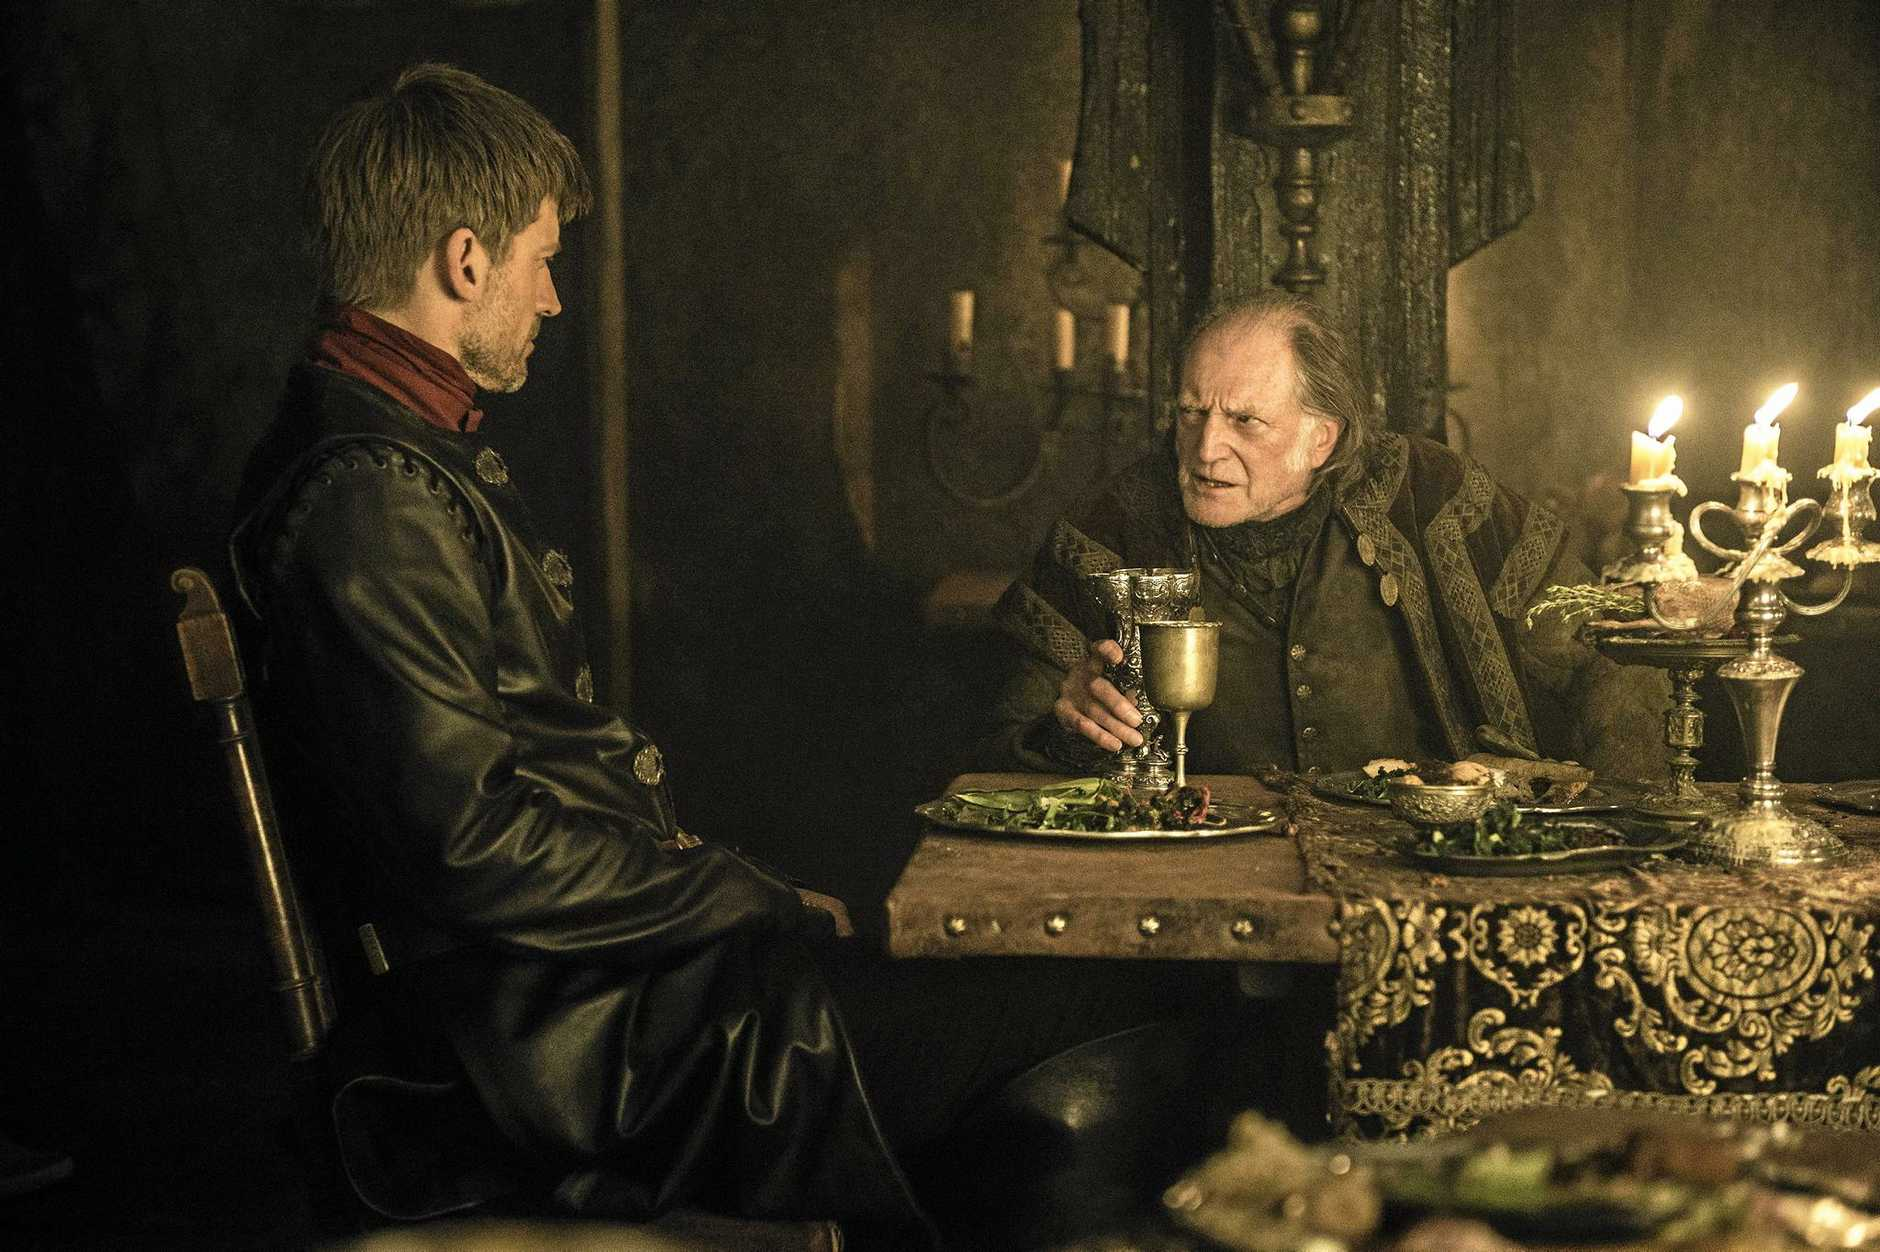 Nikolaj Coster-Waldau and David Bradley in a scene from season six episode 10 in Game of Thrones.